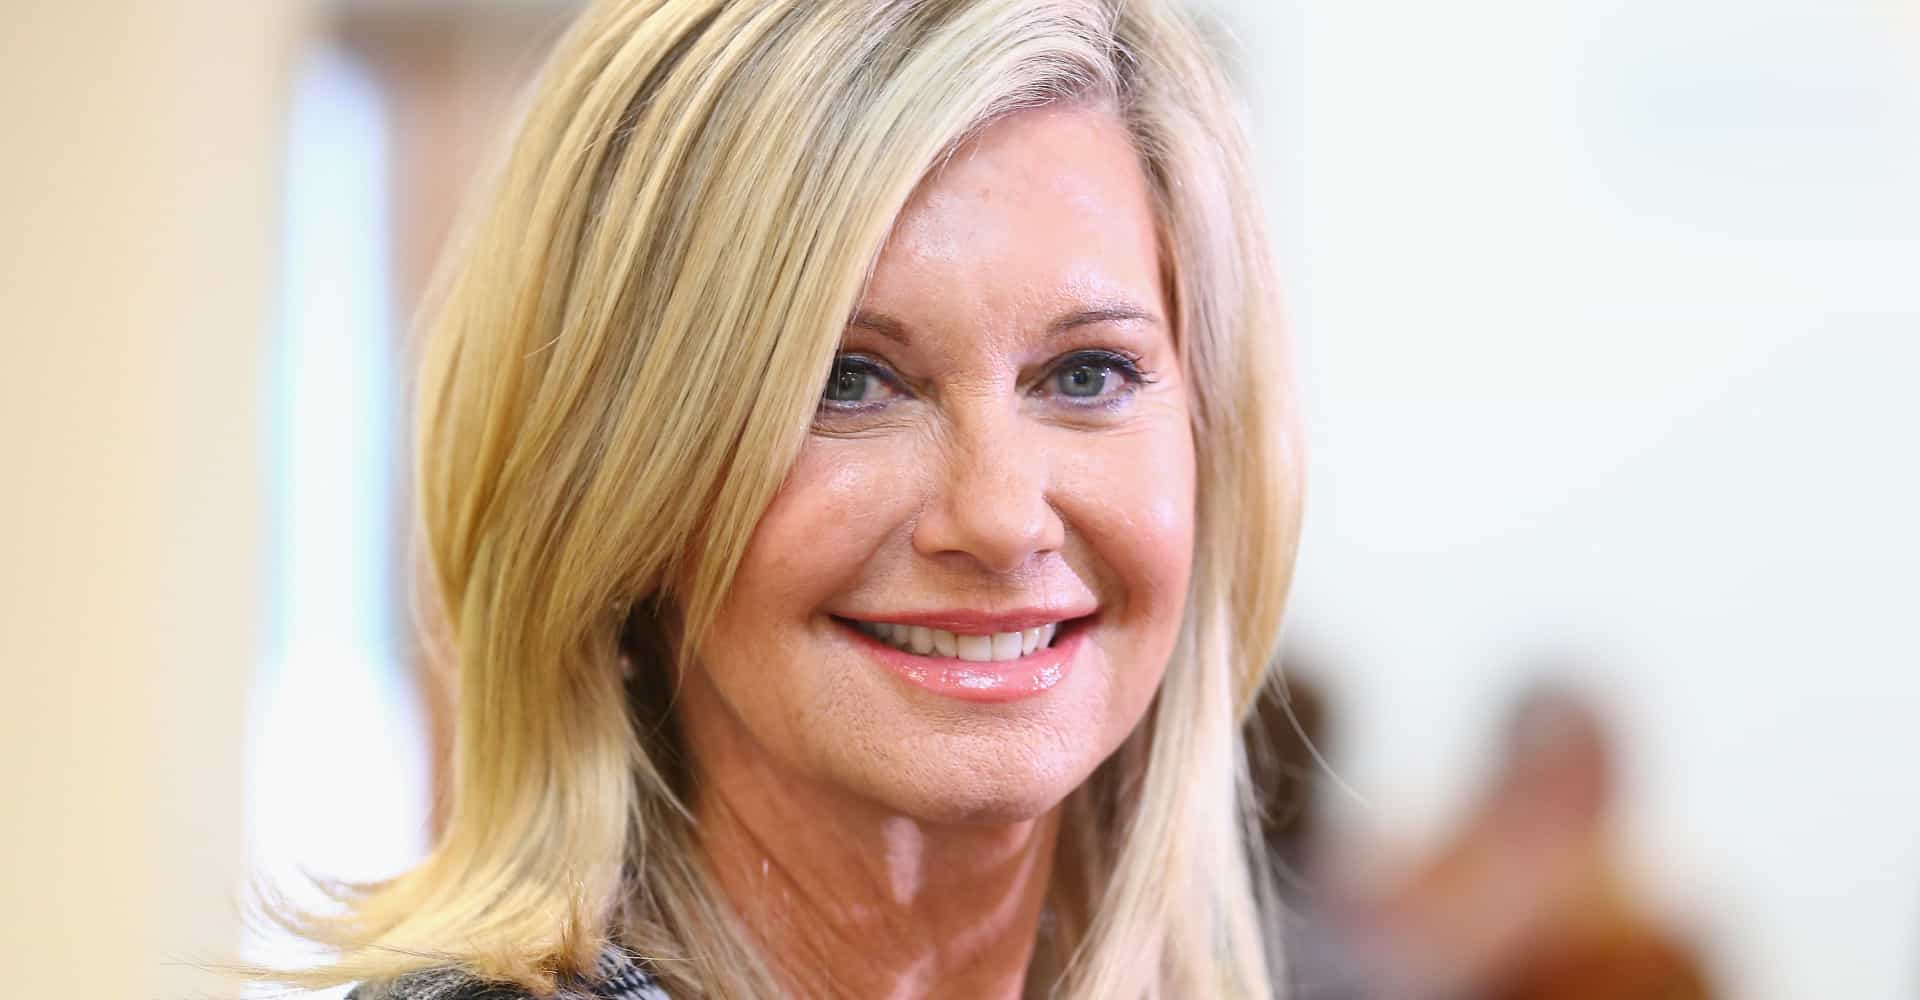 Has Olivia Newton-John's cancer returned? The star addresses rumors